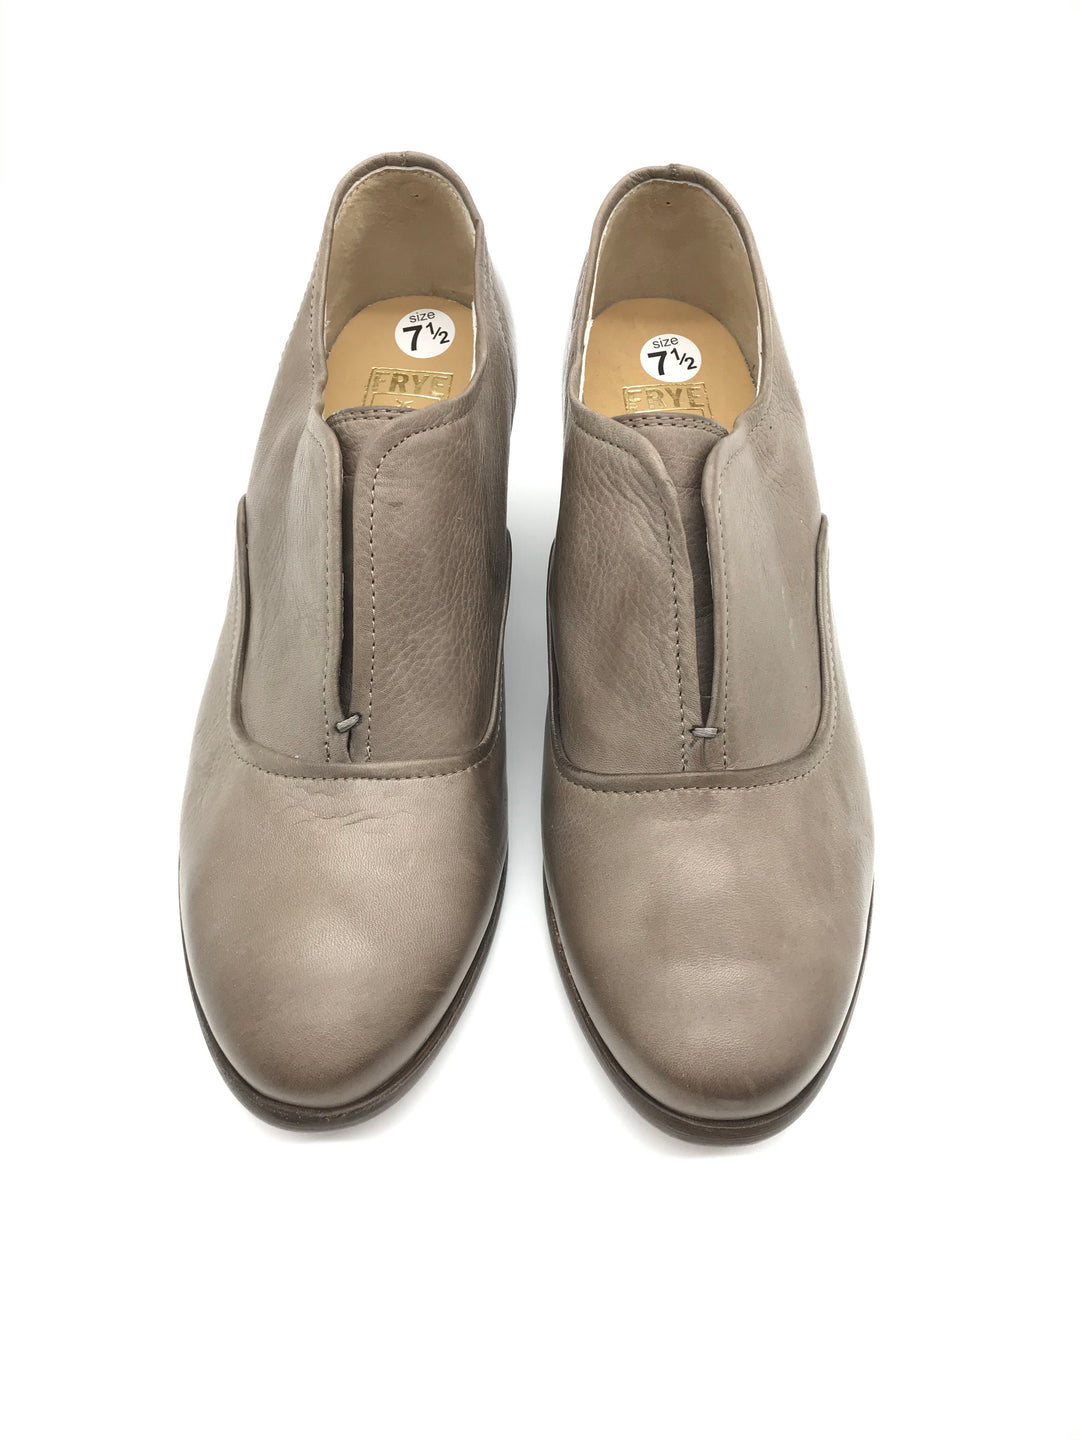 Primary Photo - BRAND: FRYE <BR>STYLE: SHOES LOW HEEL <BR>COLOR: TAUPE <BR>SIZE: 7.5 <BR>SKU: 262-26241-37170<BR>GENTLE WEAR - AS IS